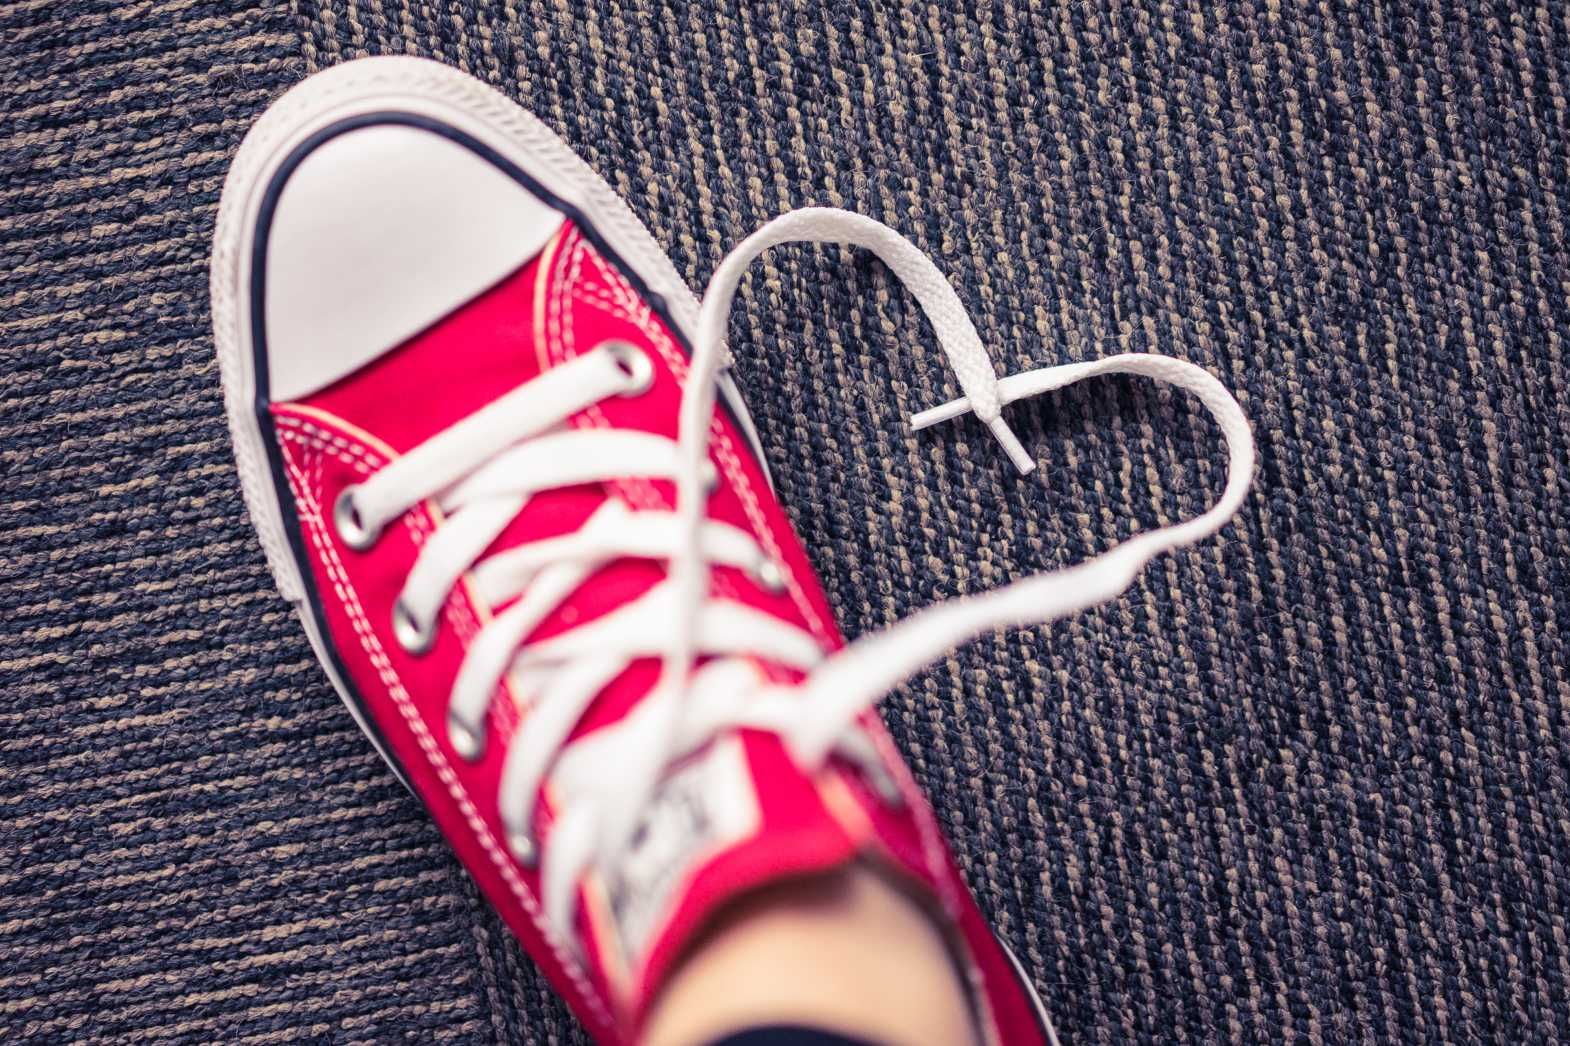 happy shoes shoelace heart free stock photos picjumbo.com  - Valentýnské fotografie zdarma – picjumbo.com